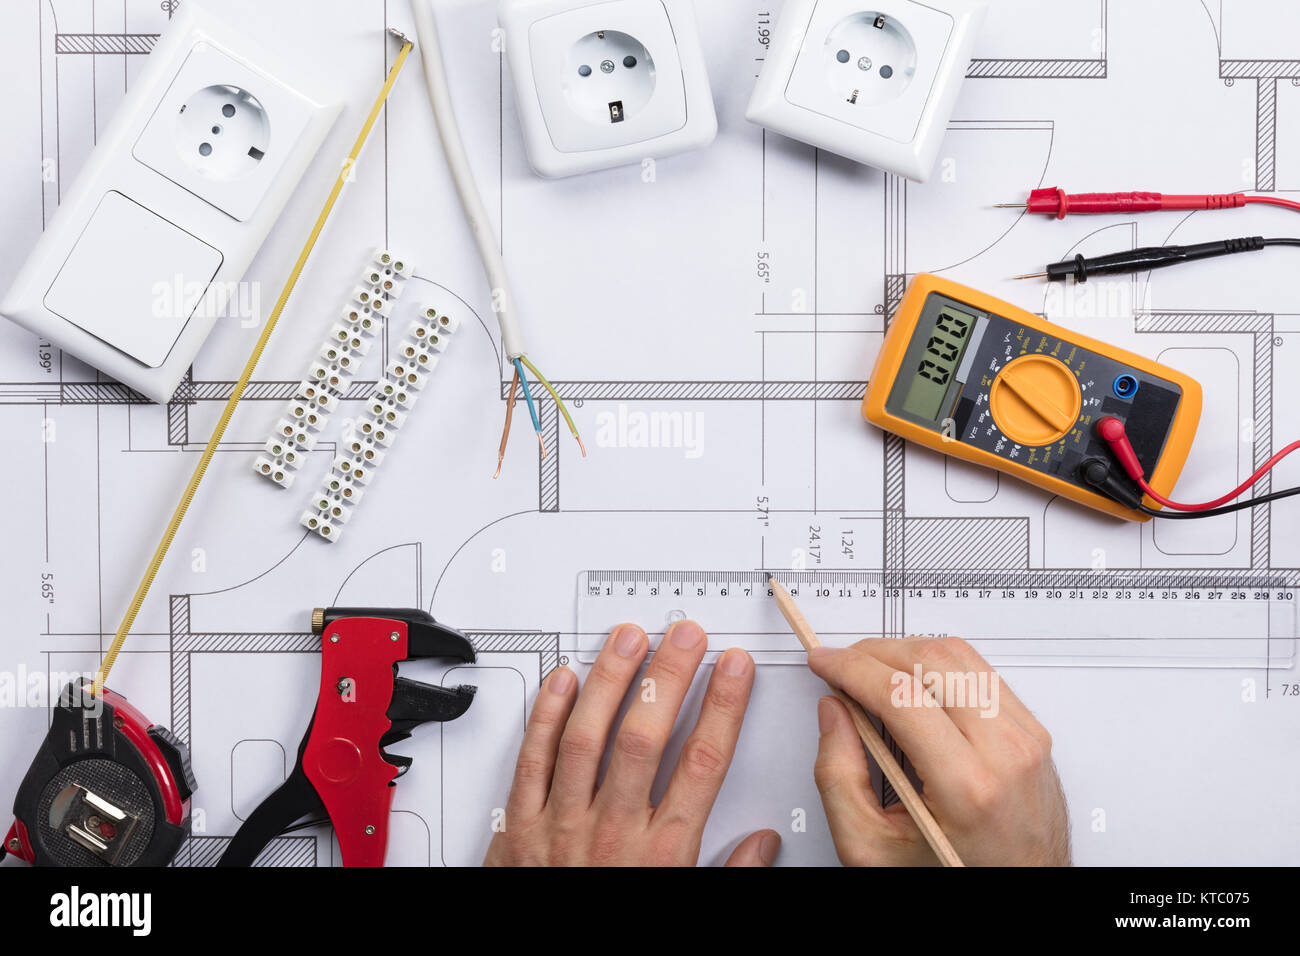 Electrical Multimeter Wiring Diagram Stock Photos Home Diagrams And Blueprints Architect Drawing Plan On Blueprint With Components Image